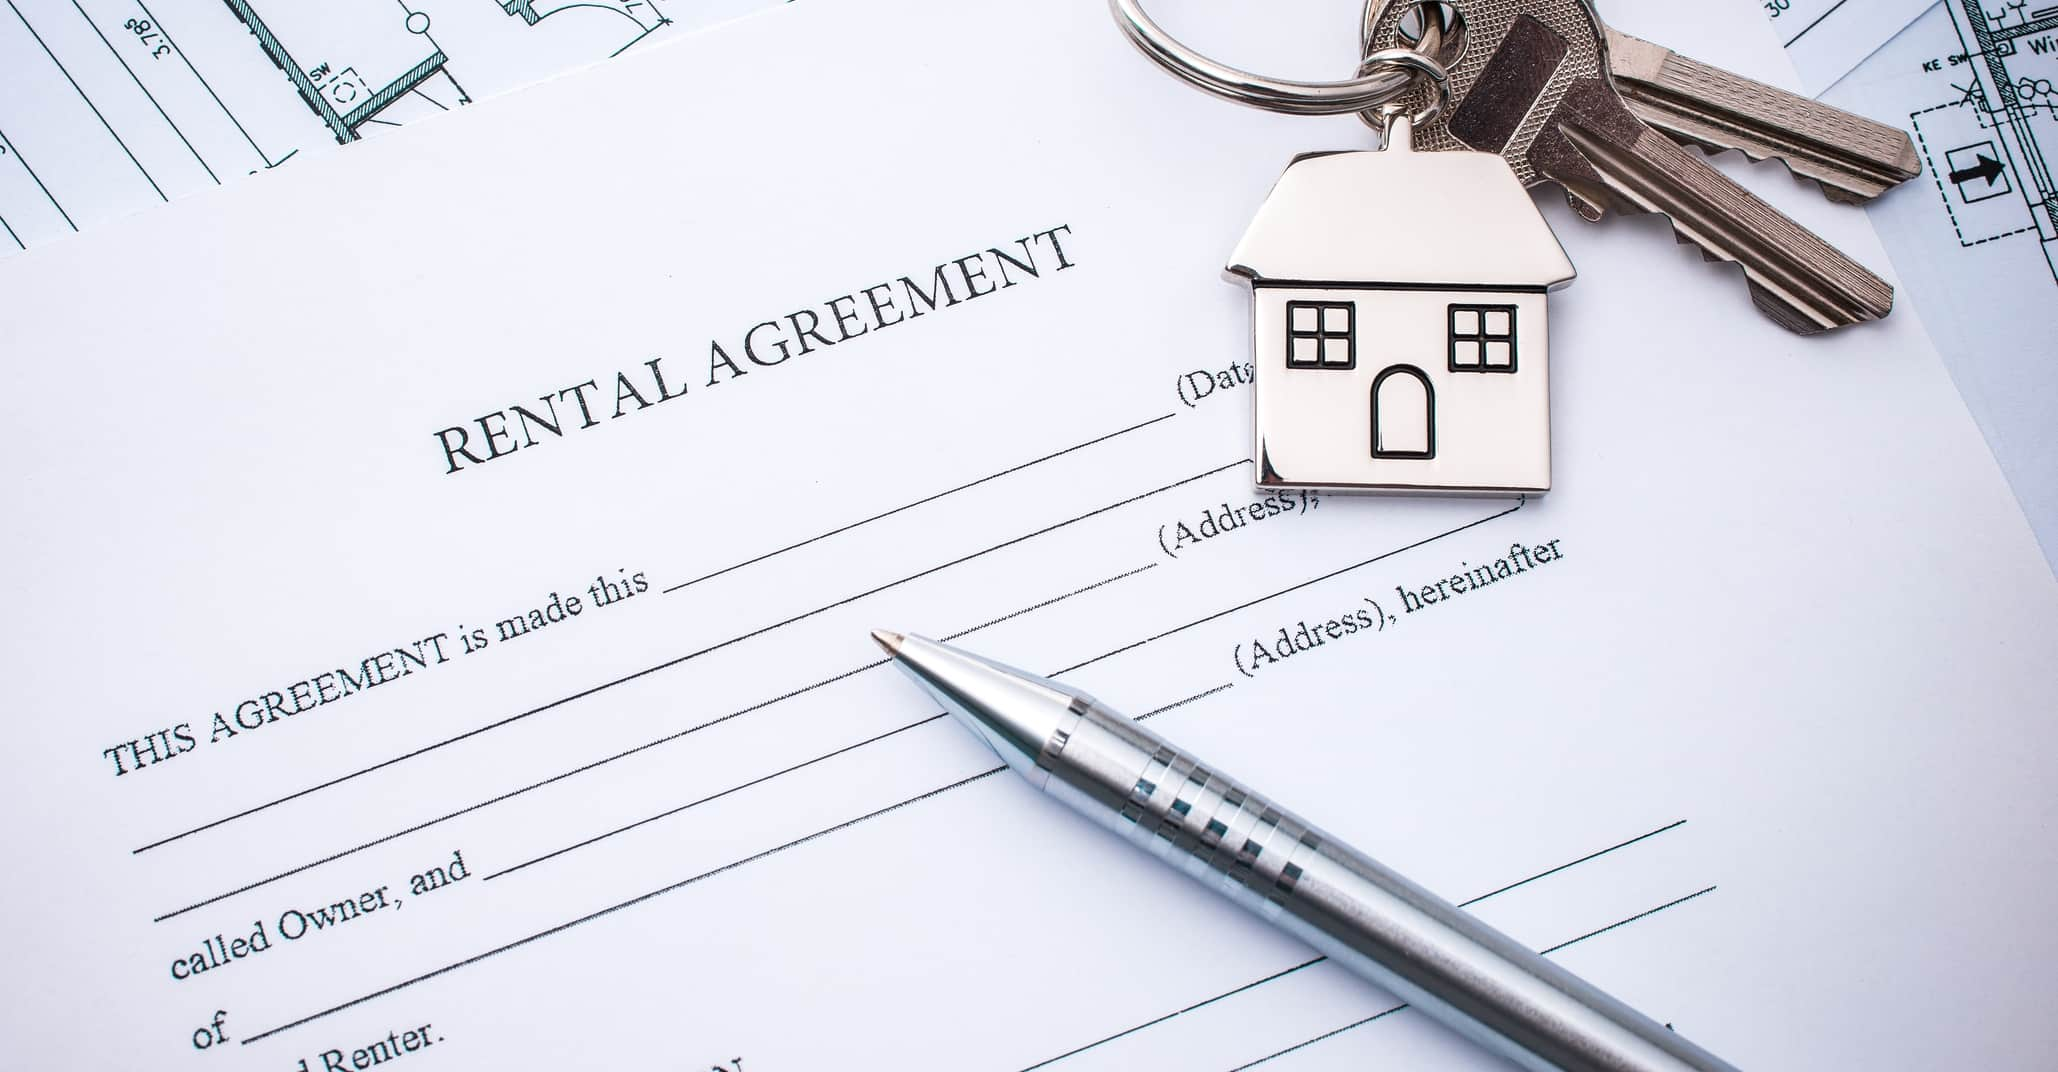 DURATION OF THE LAWS RENTAL AGREEMENT